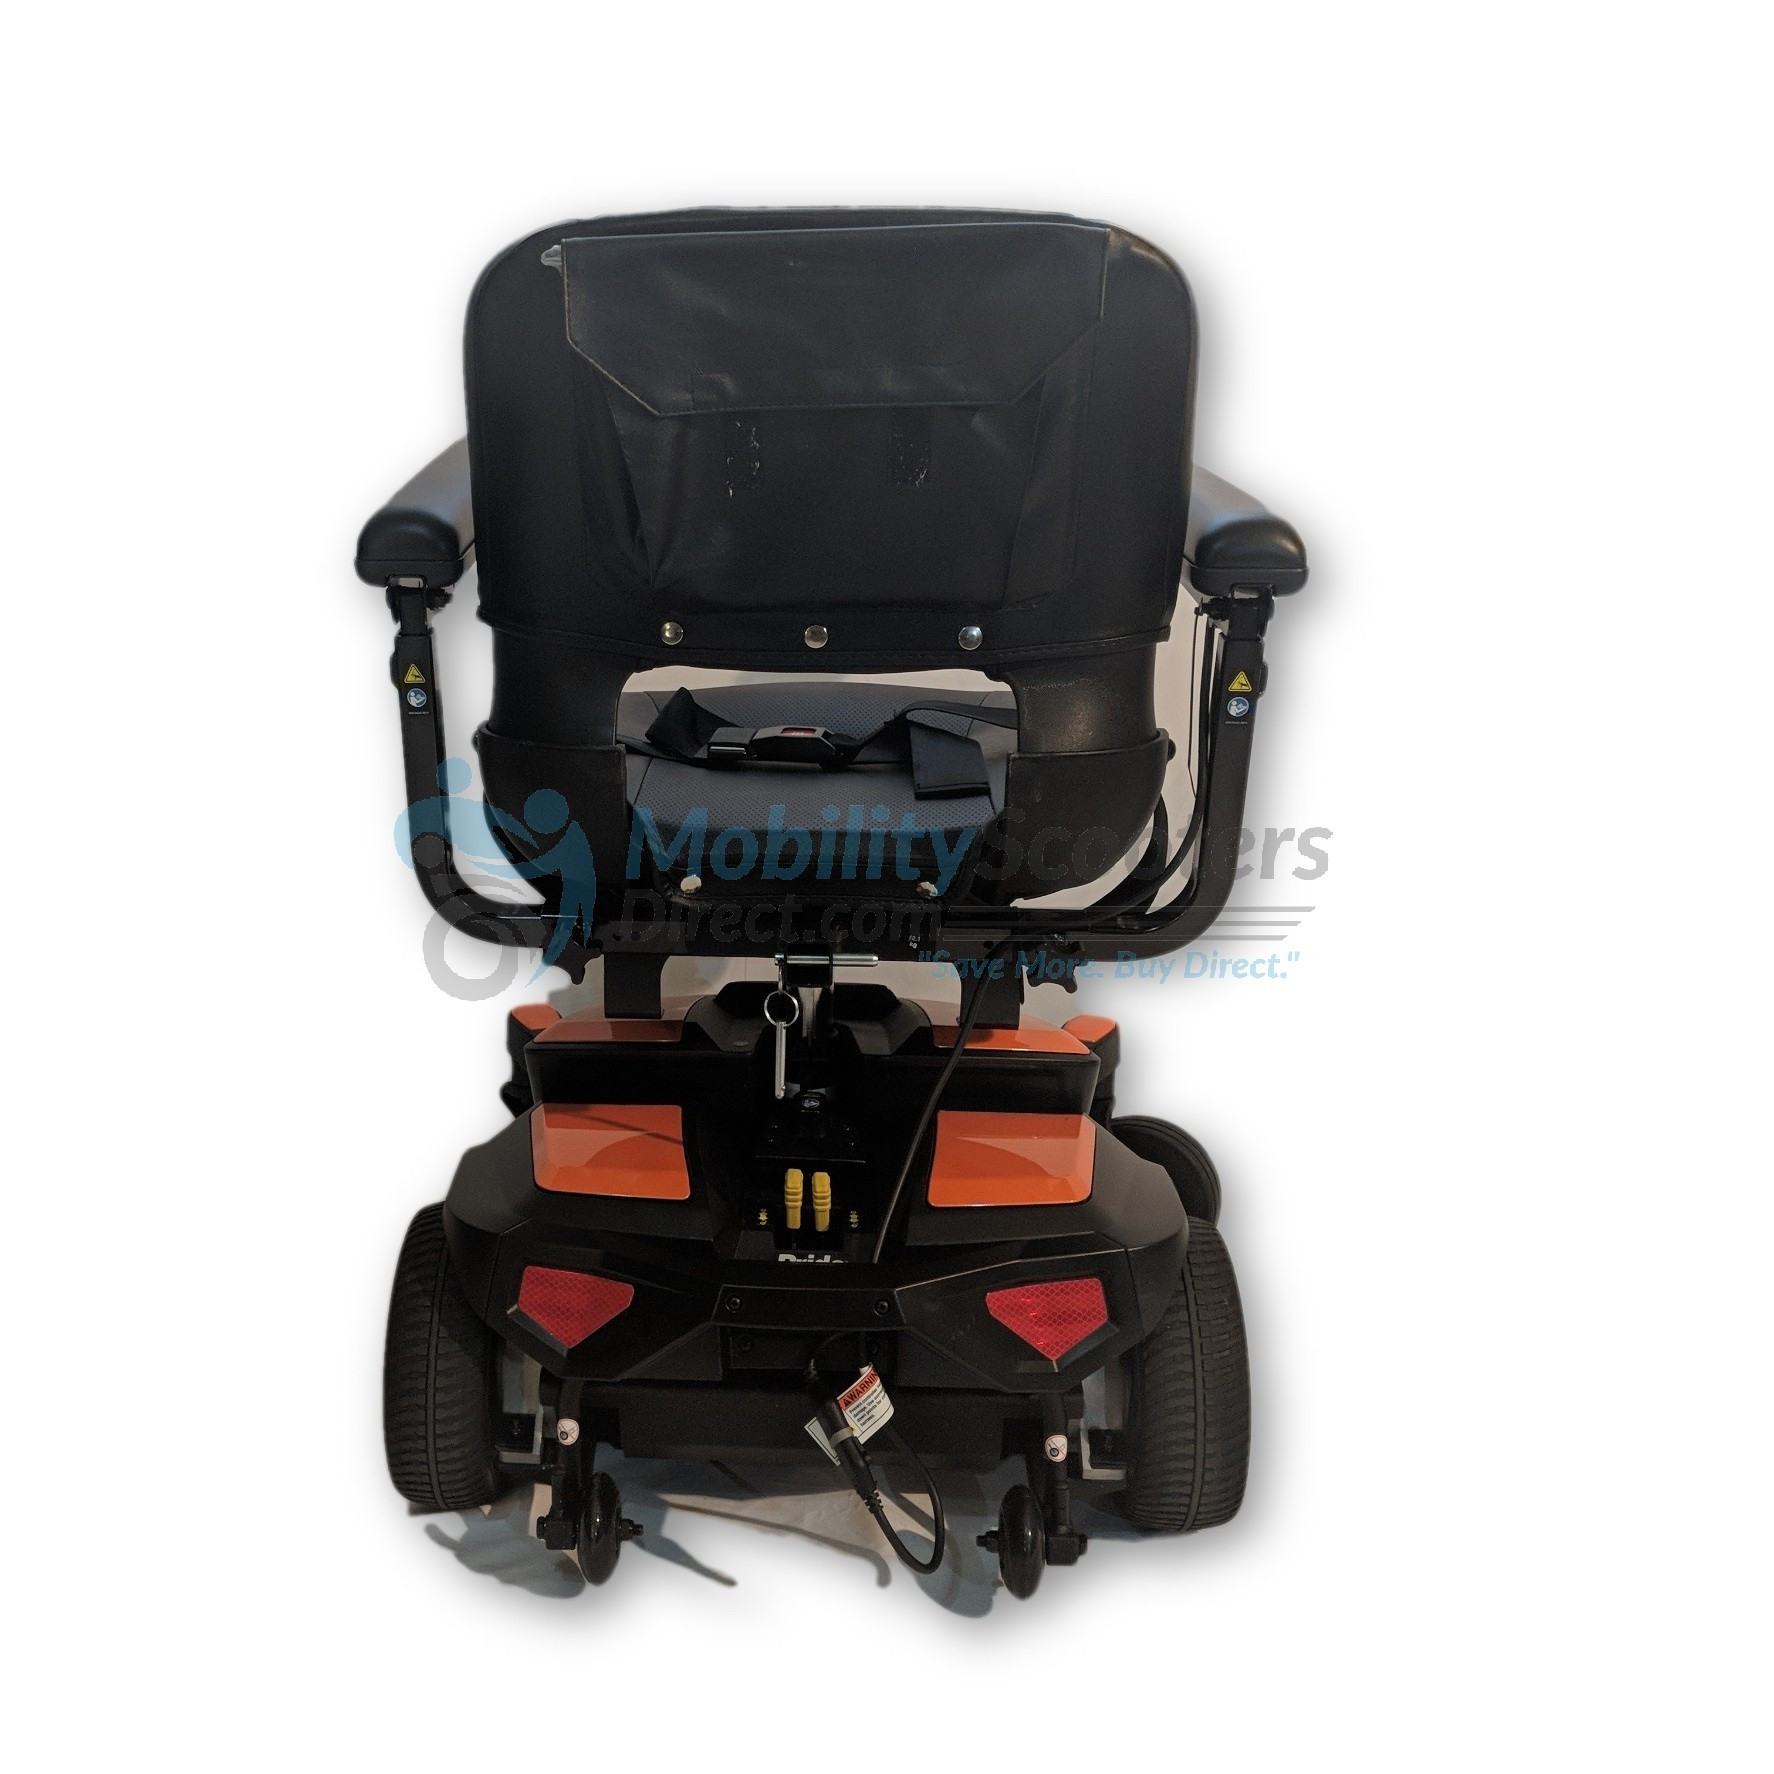 power chair accessories bags swivel gliders go wheelchair for sale lowest prices tax